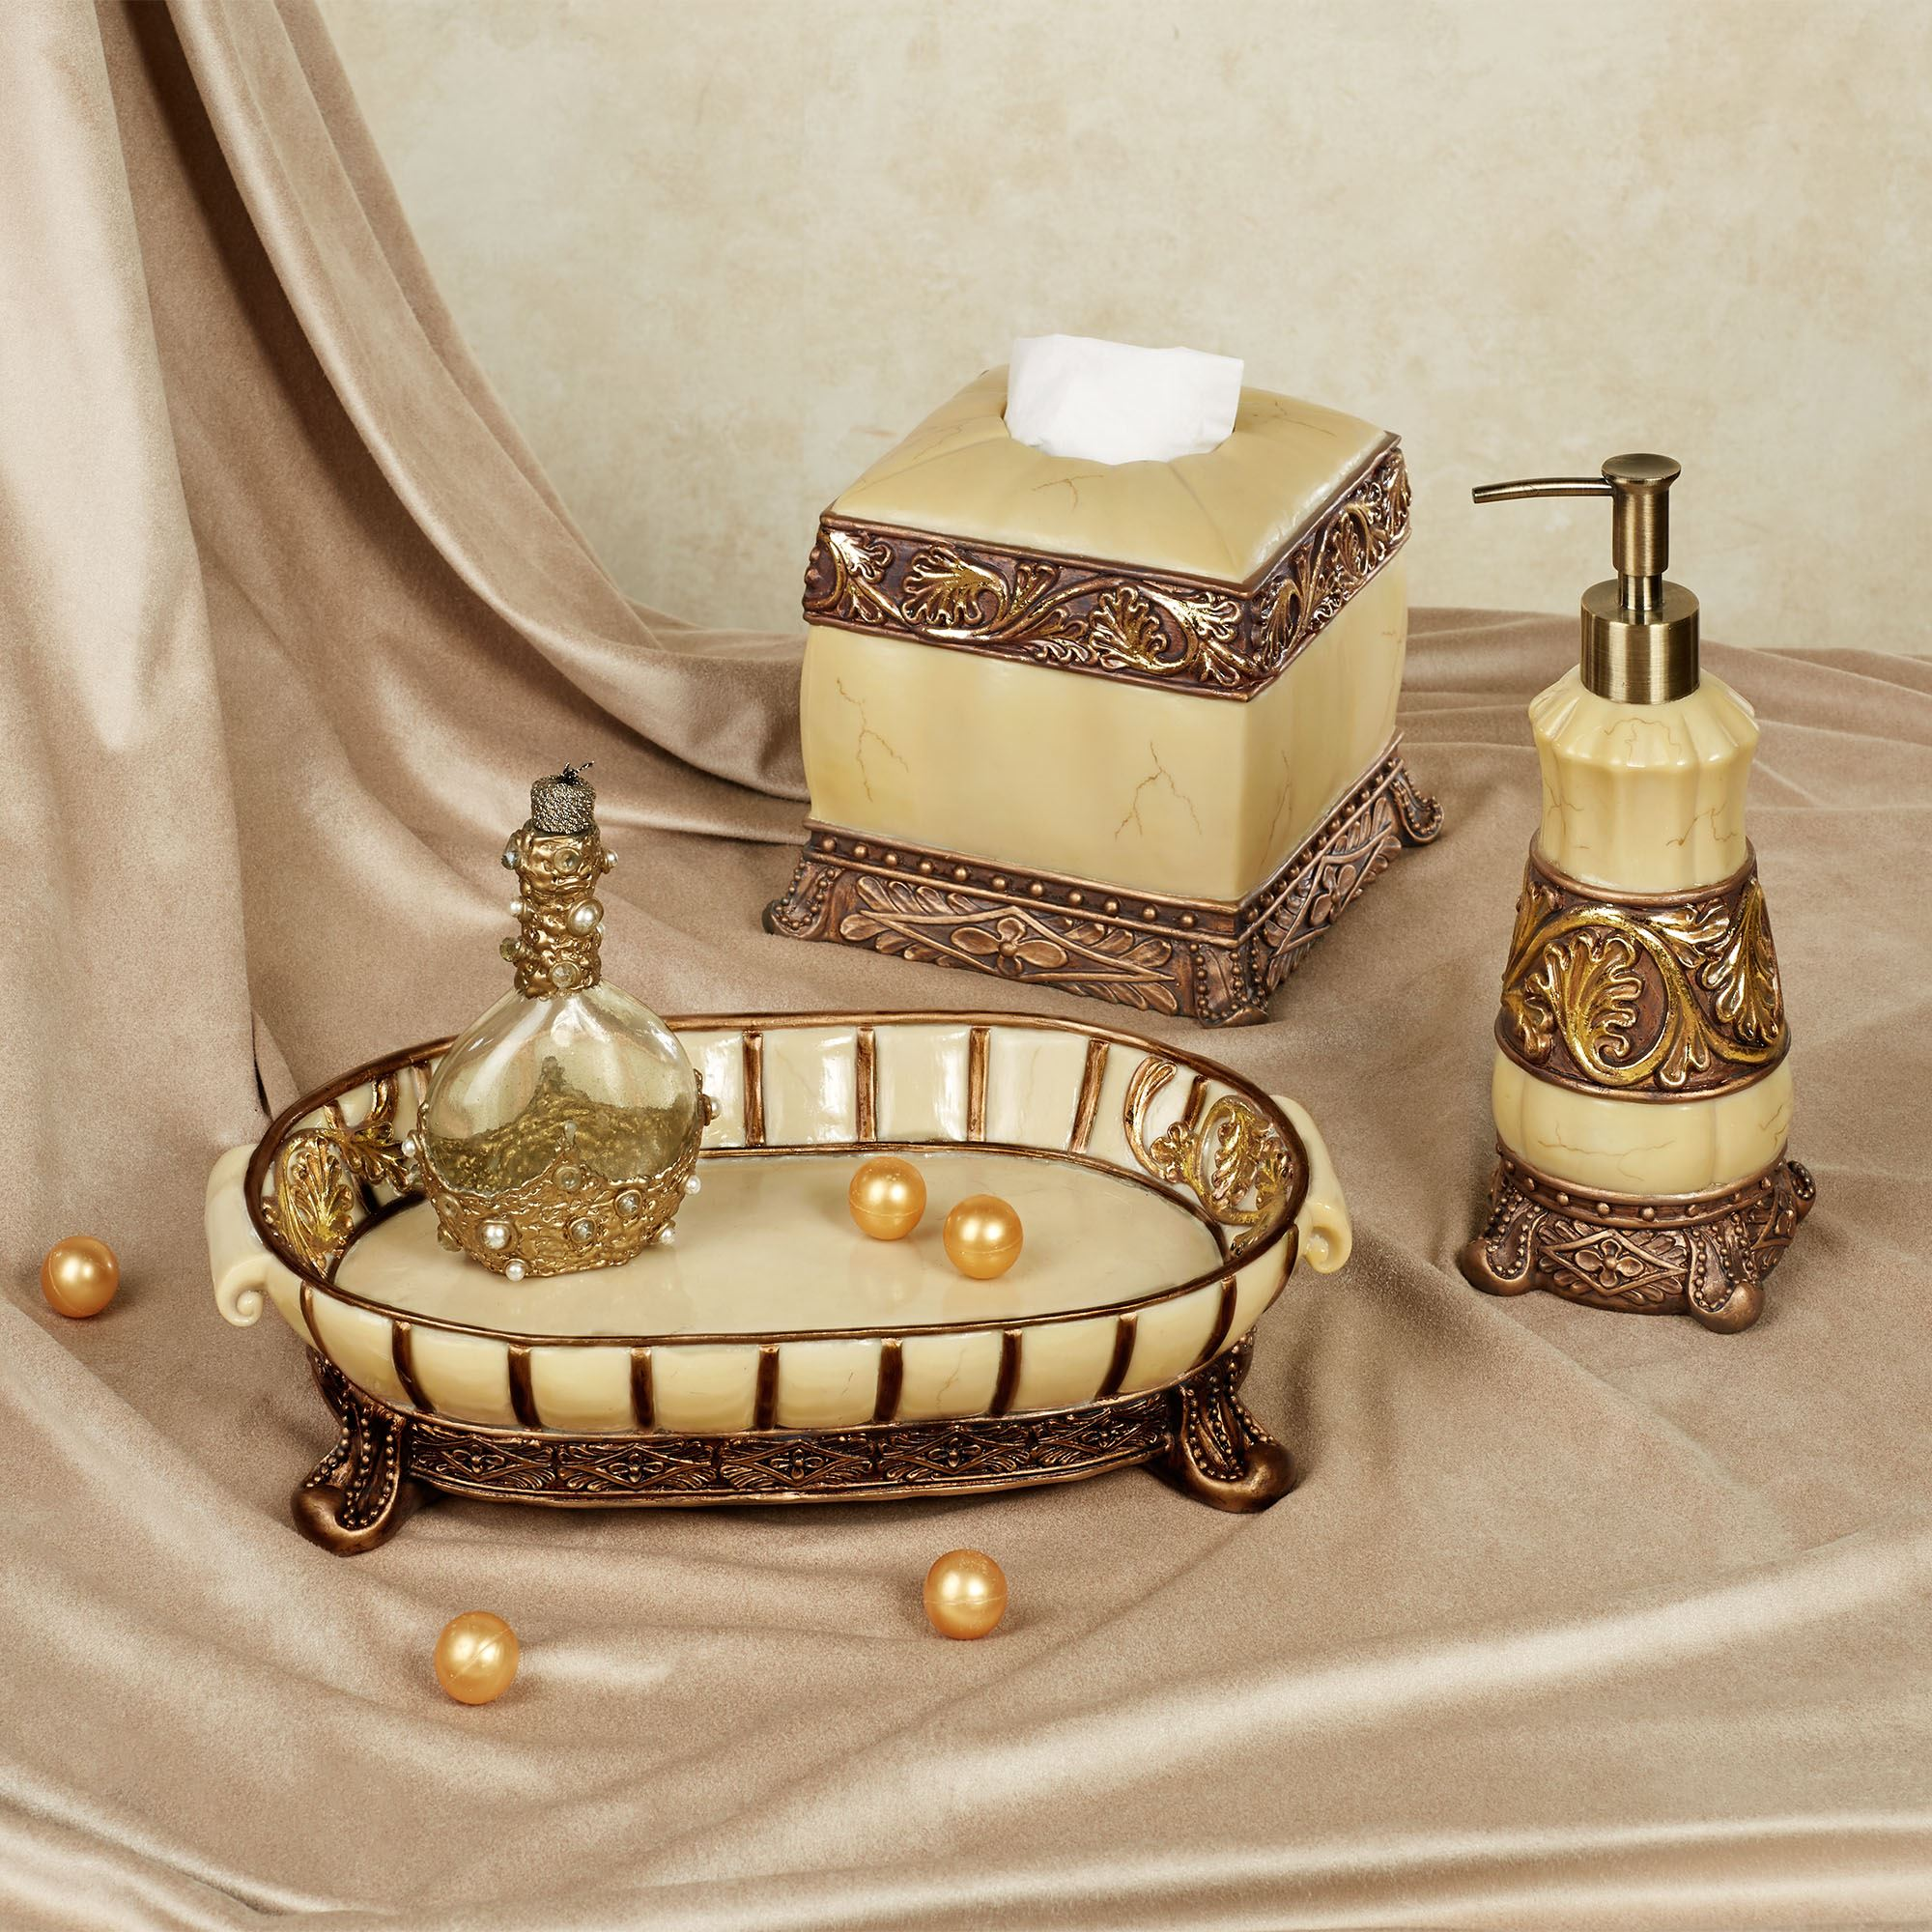 Chalmette elegant bath accessories for Looking for bathroom accessories